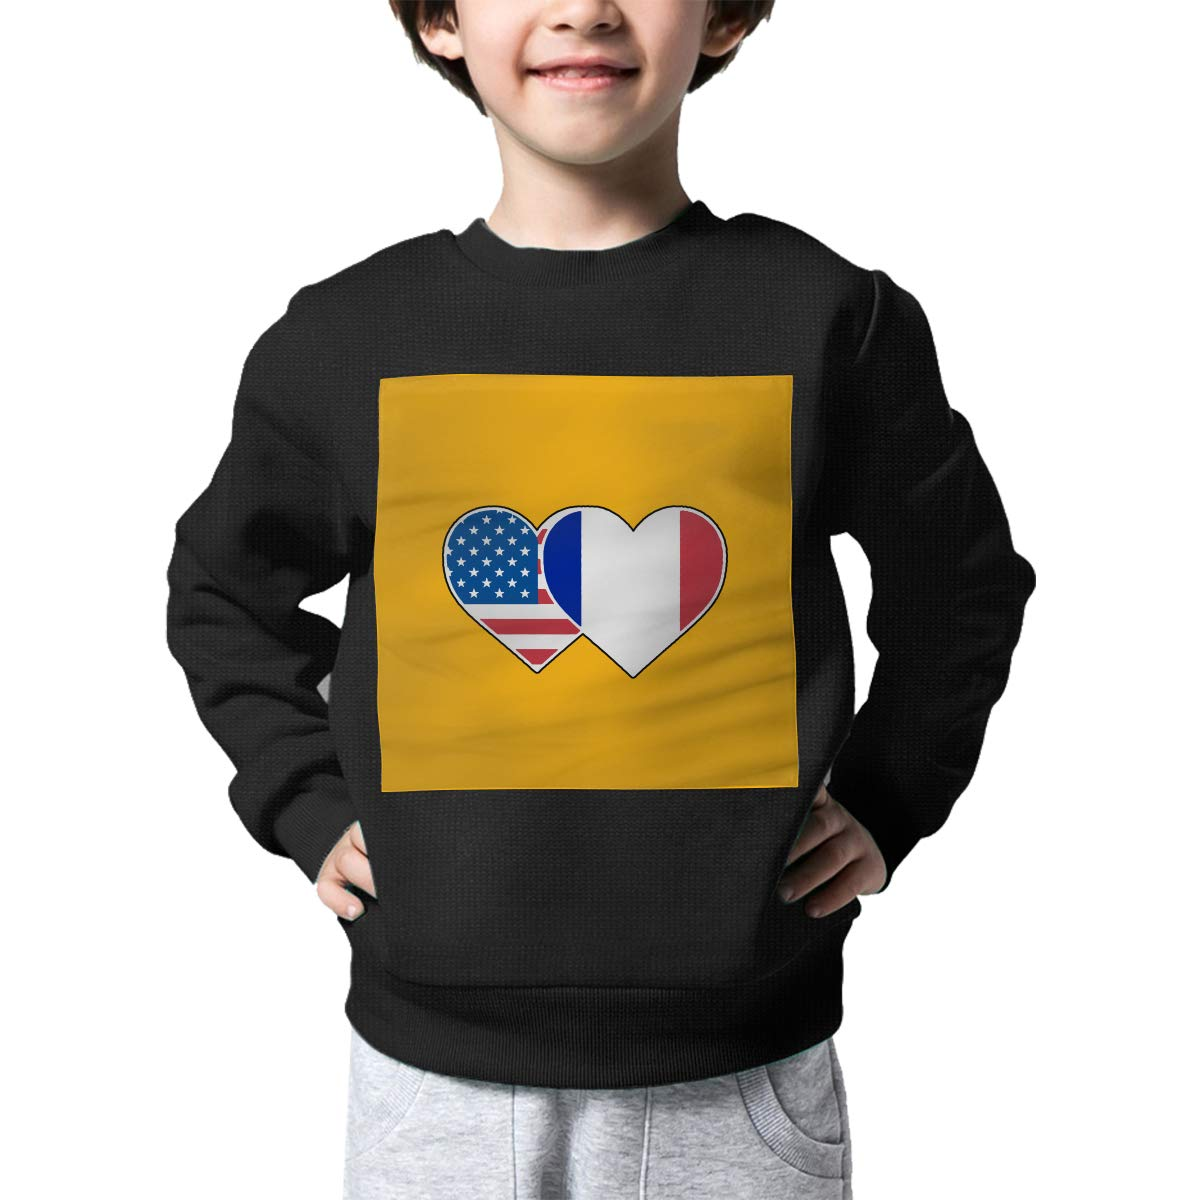 AW-KOCP Childrens France USA Flag Twin Heart Sweater Kids Pullover Sweaters